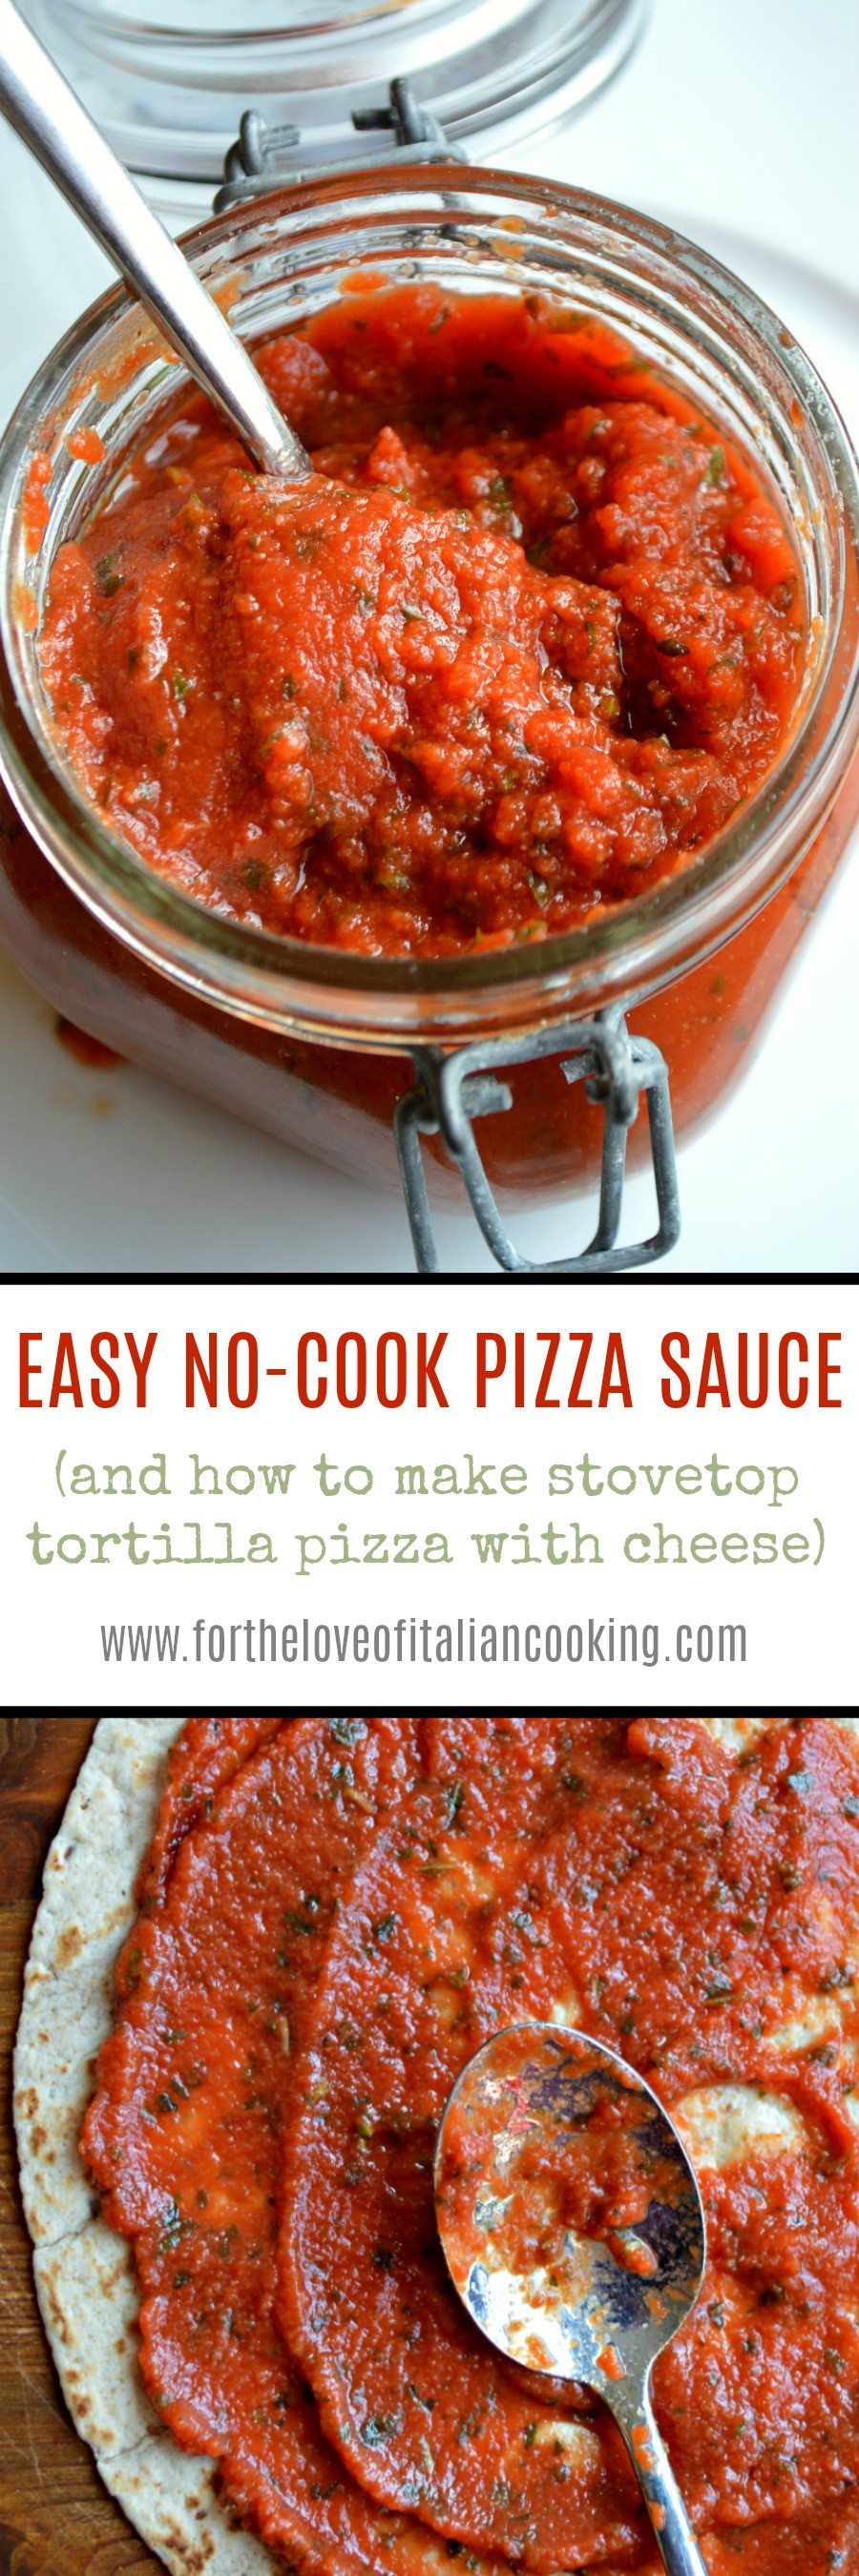 No Cook Pizza Sauce  EASY NO COOK PIZZA SAUCE plus how to make stovetop